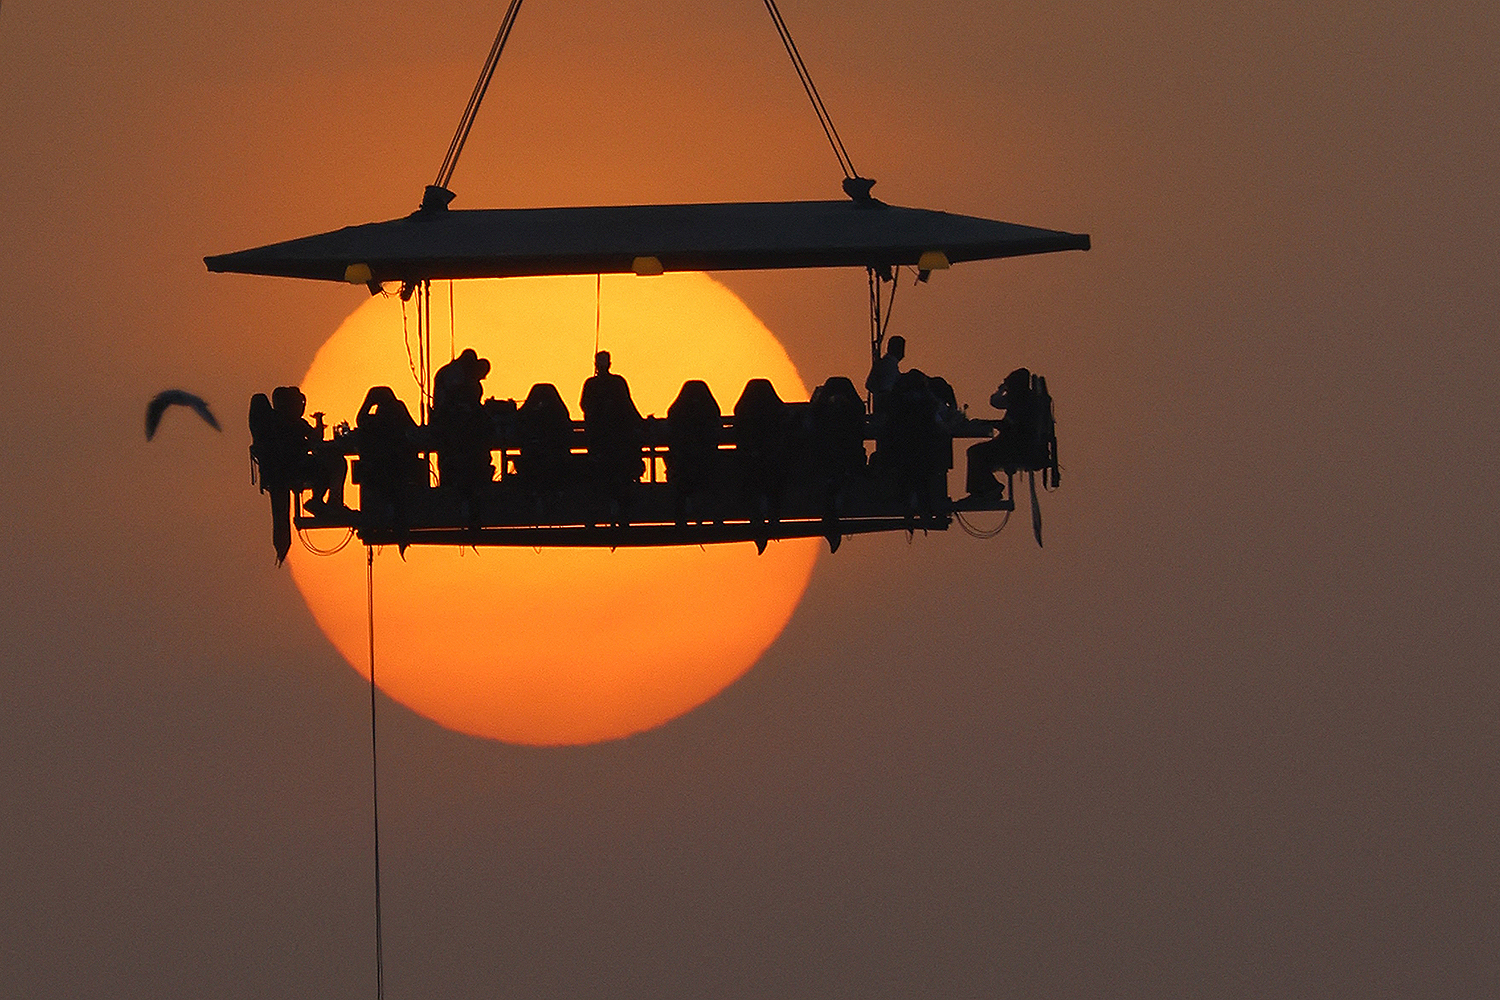 People dine around a table suspended by a crane 55 yards above the ground at the Dinner in the Sky restaurant in Dubai on March 11. GIUSEPPE CACACE/AFP via Getty Images